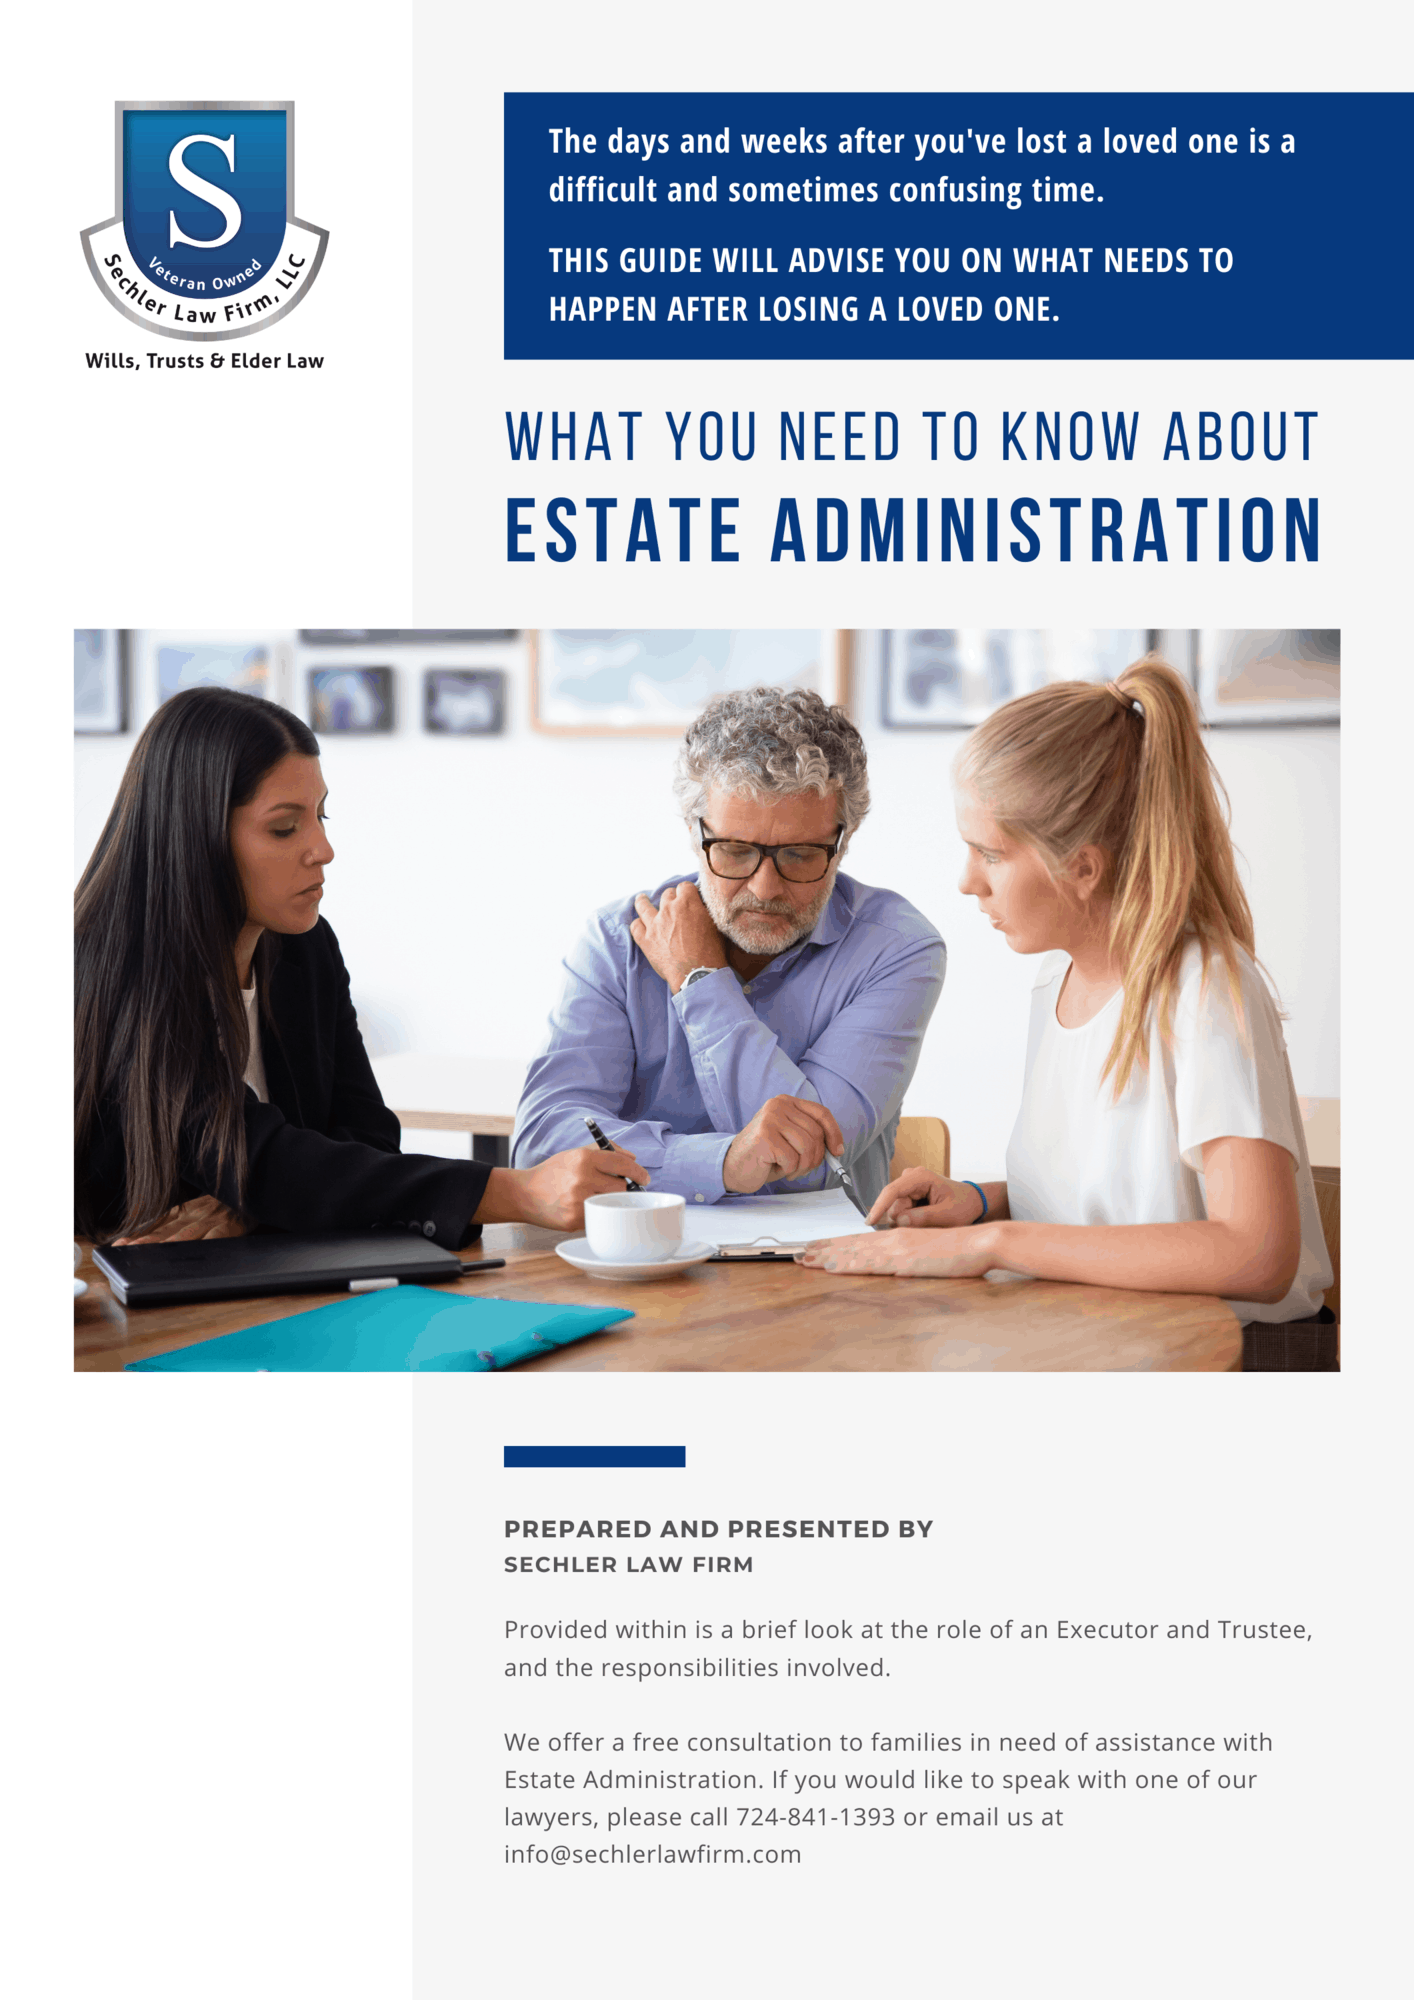 What You Need to Know About Estate Administration